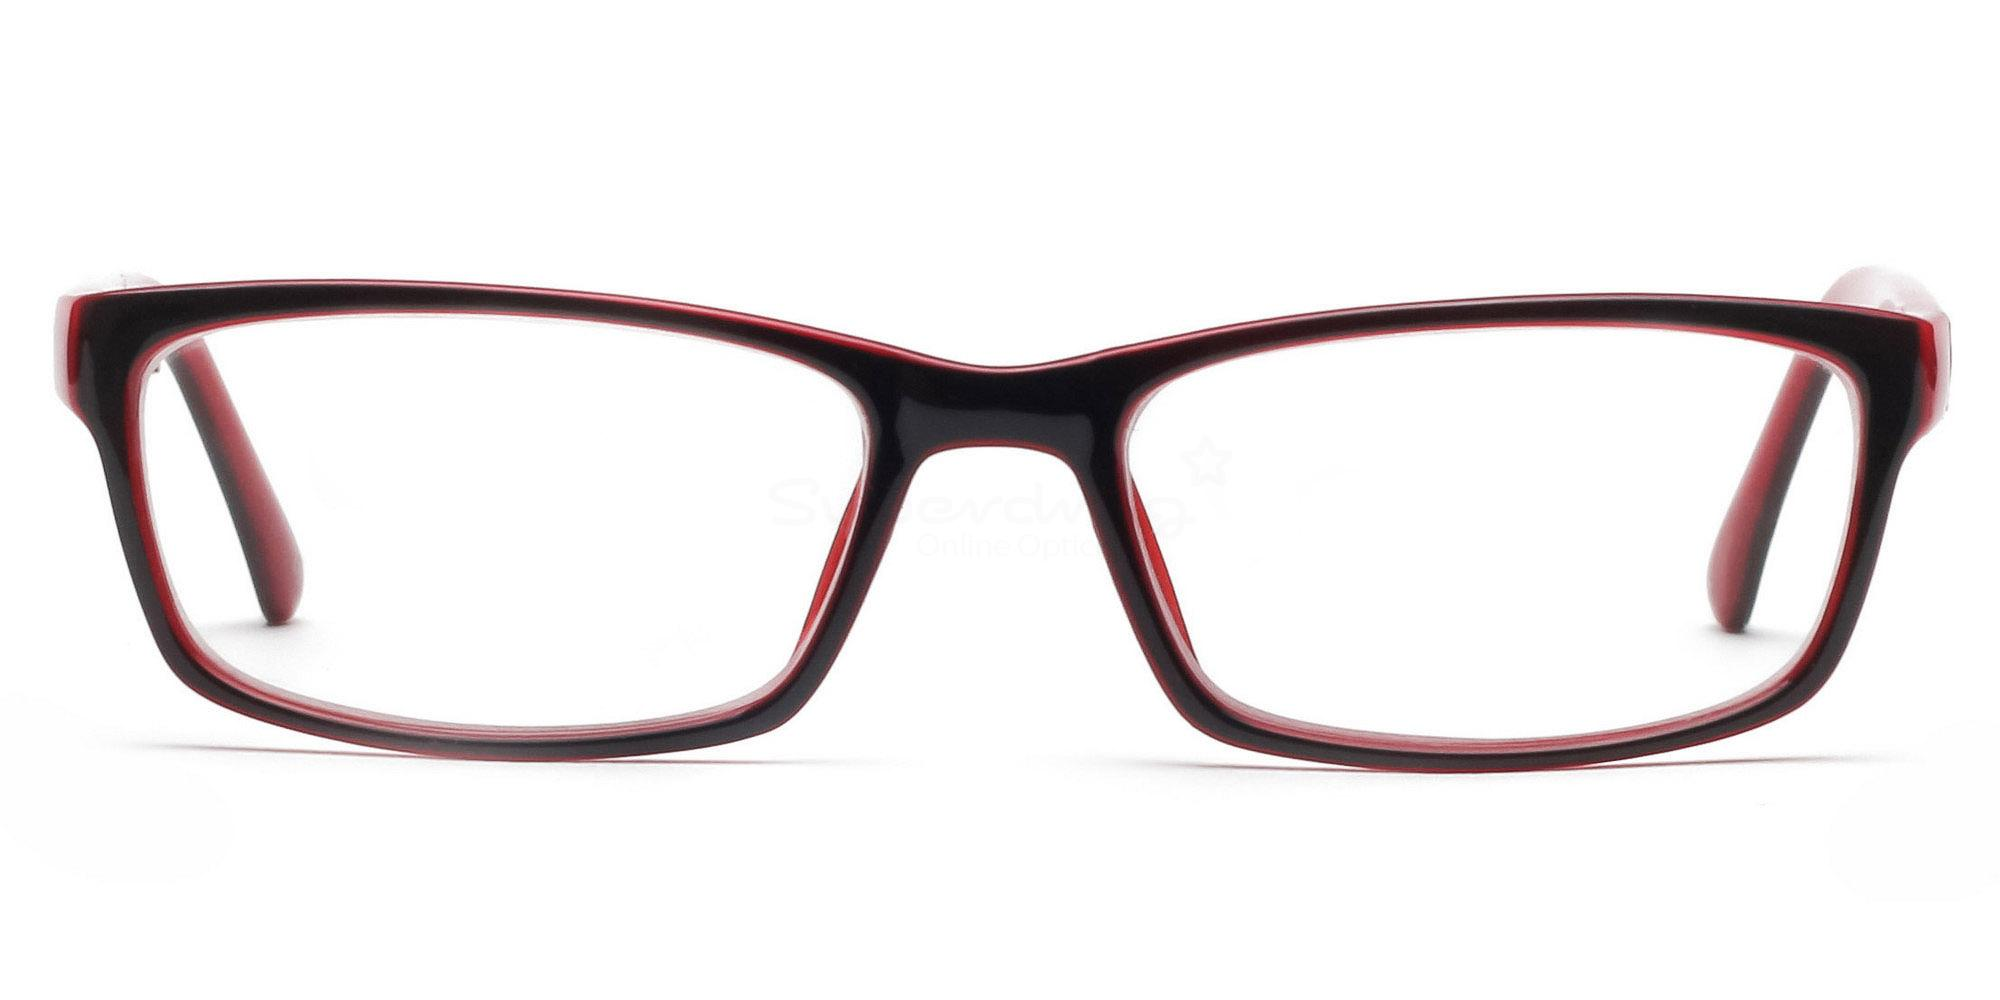 COL.23 2426 - Black and Red Glasses, Helium